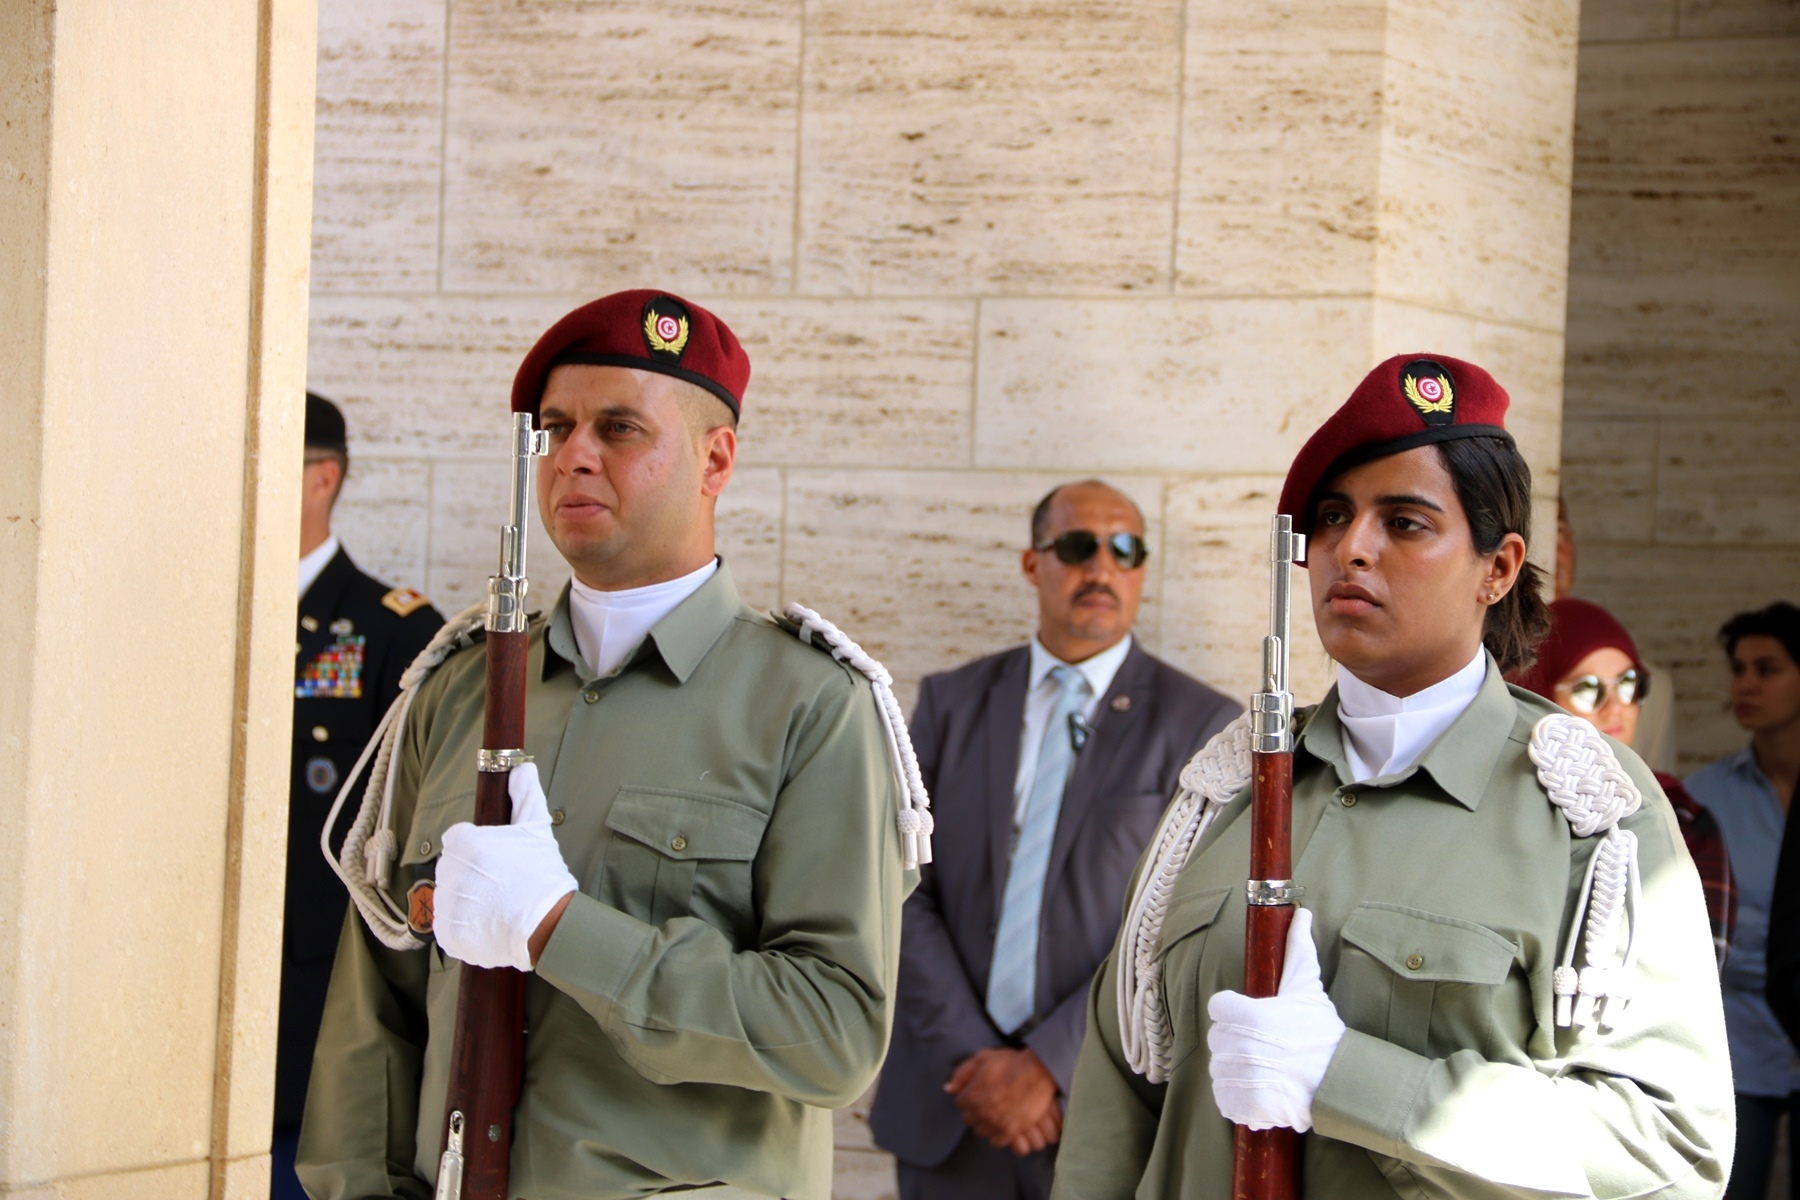 A Tunisian military honor guard stands in formation as part of the Memorial Day ceremony in Carthage, Tunisia, May 28, 2018. (Photo by Zouhaier SFAXI, U.S. Embassy Tunis)